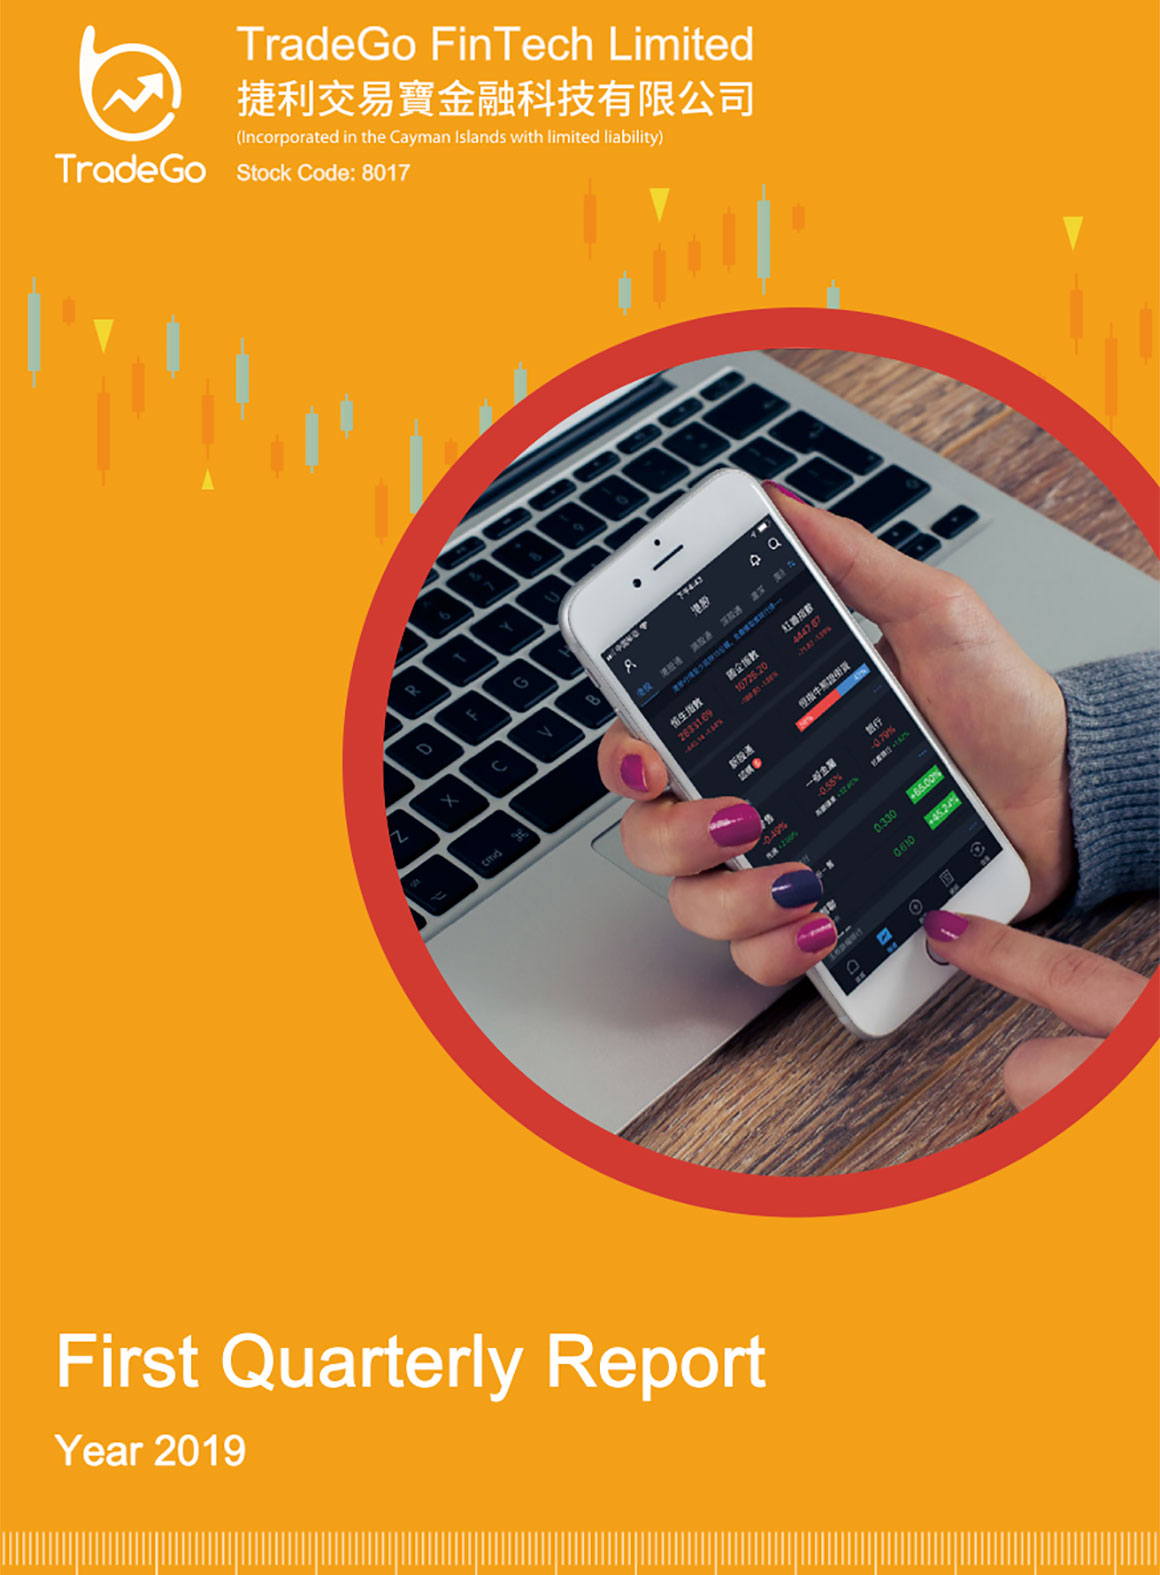 2019 First Quarterly Report